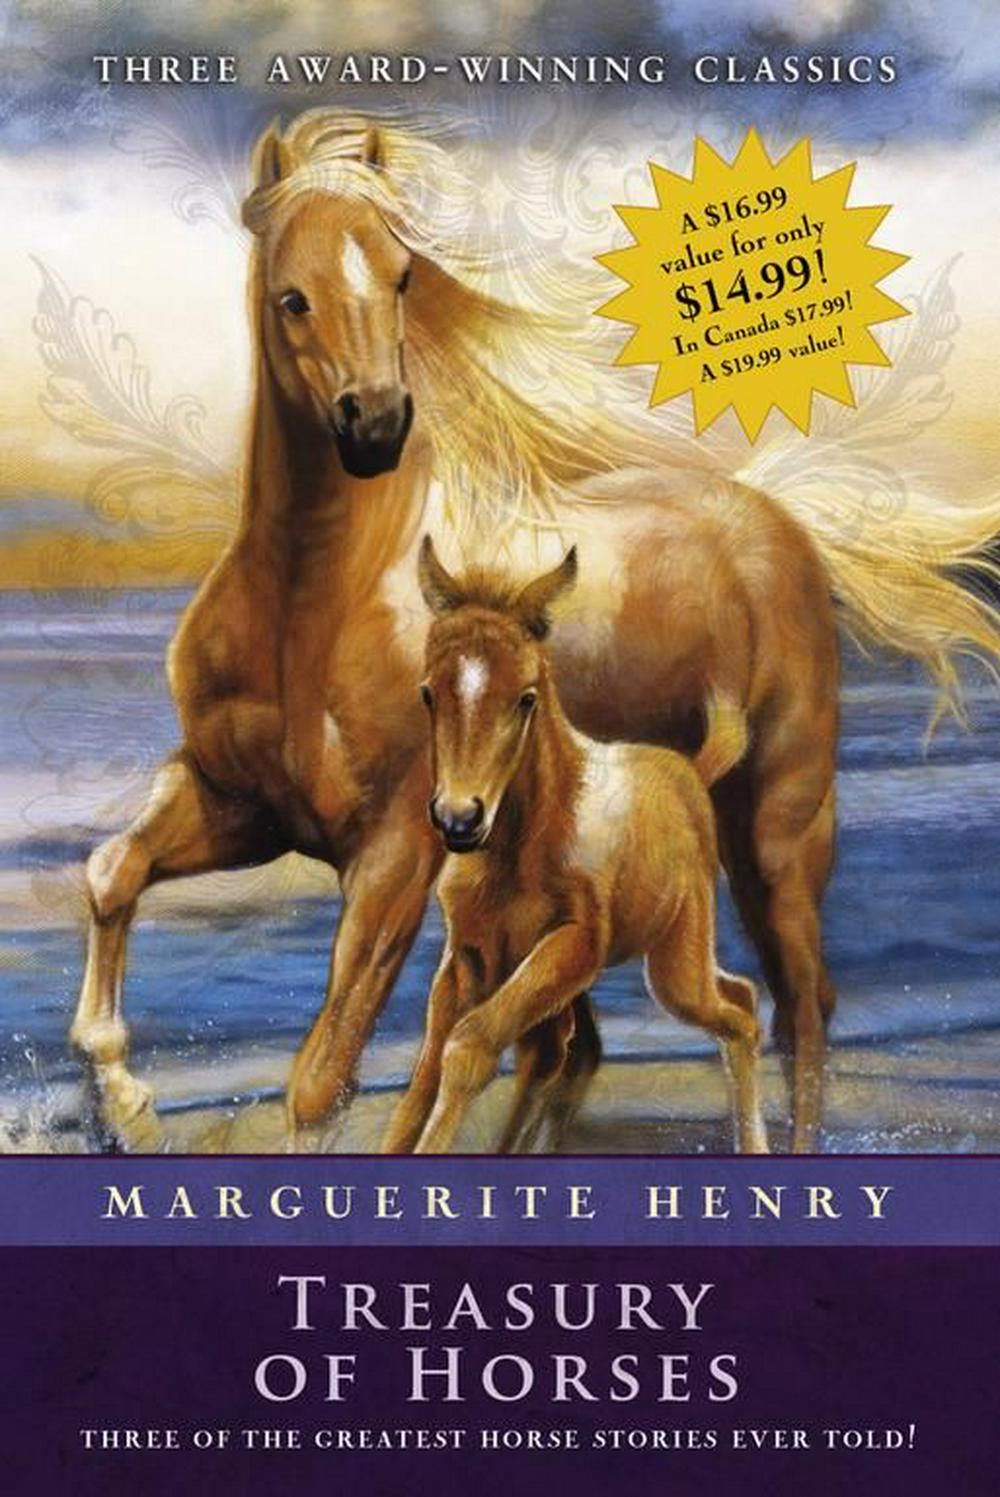 Marguerite Henry Treasury of Horses